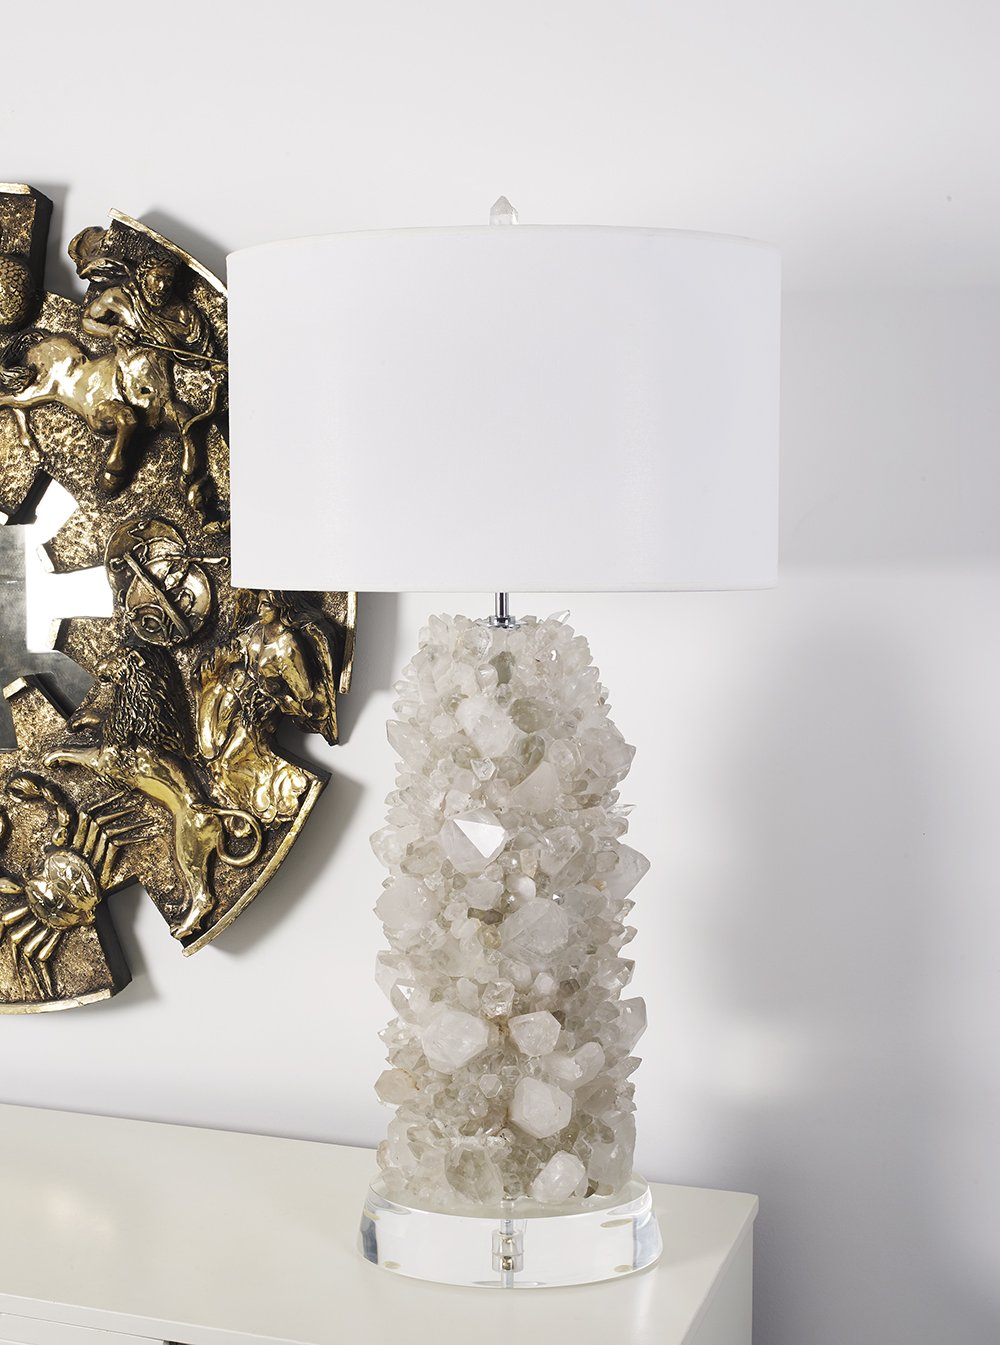 Custom Tall Veronica Table Lamp by Matthew Studios in Clear Quartz and Lucite.